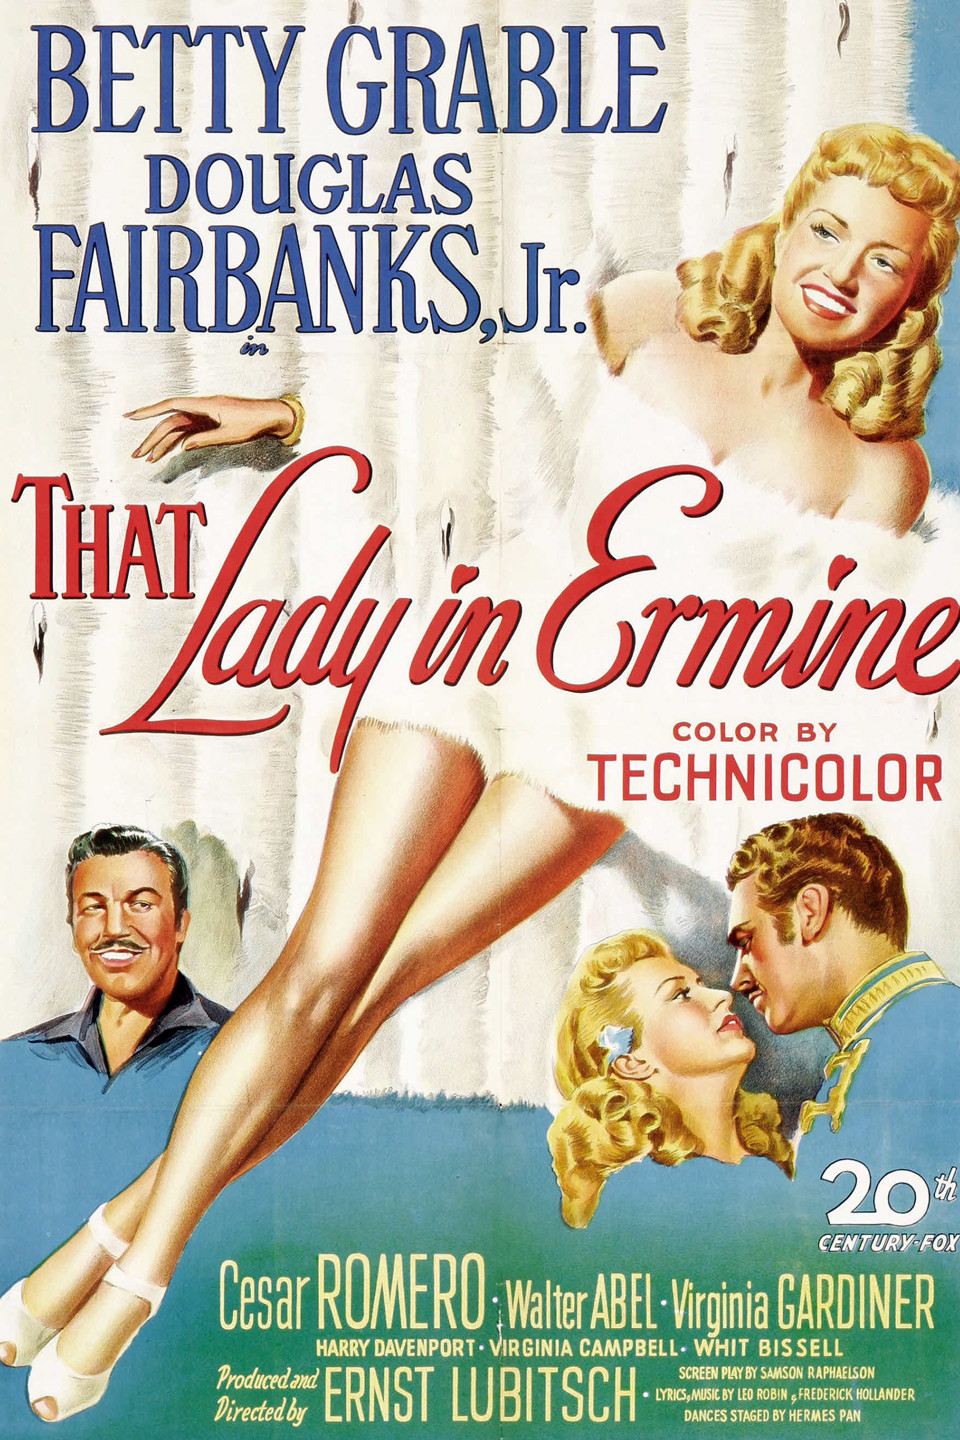 Douglas Fairbanks Jr., Betty Grable, and Cesar Romero in That Lady in Ermine (1948)